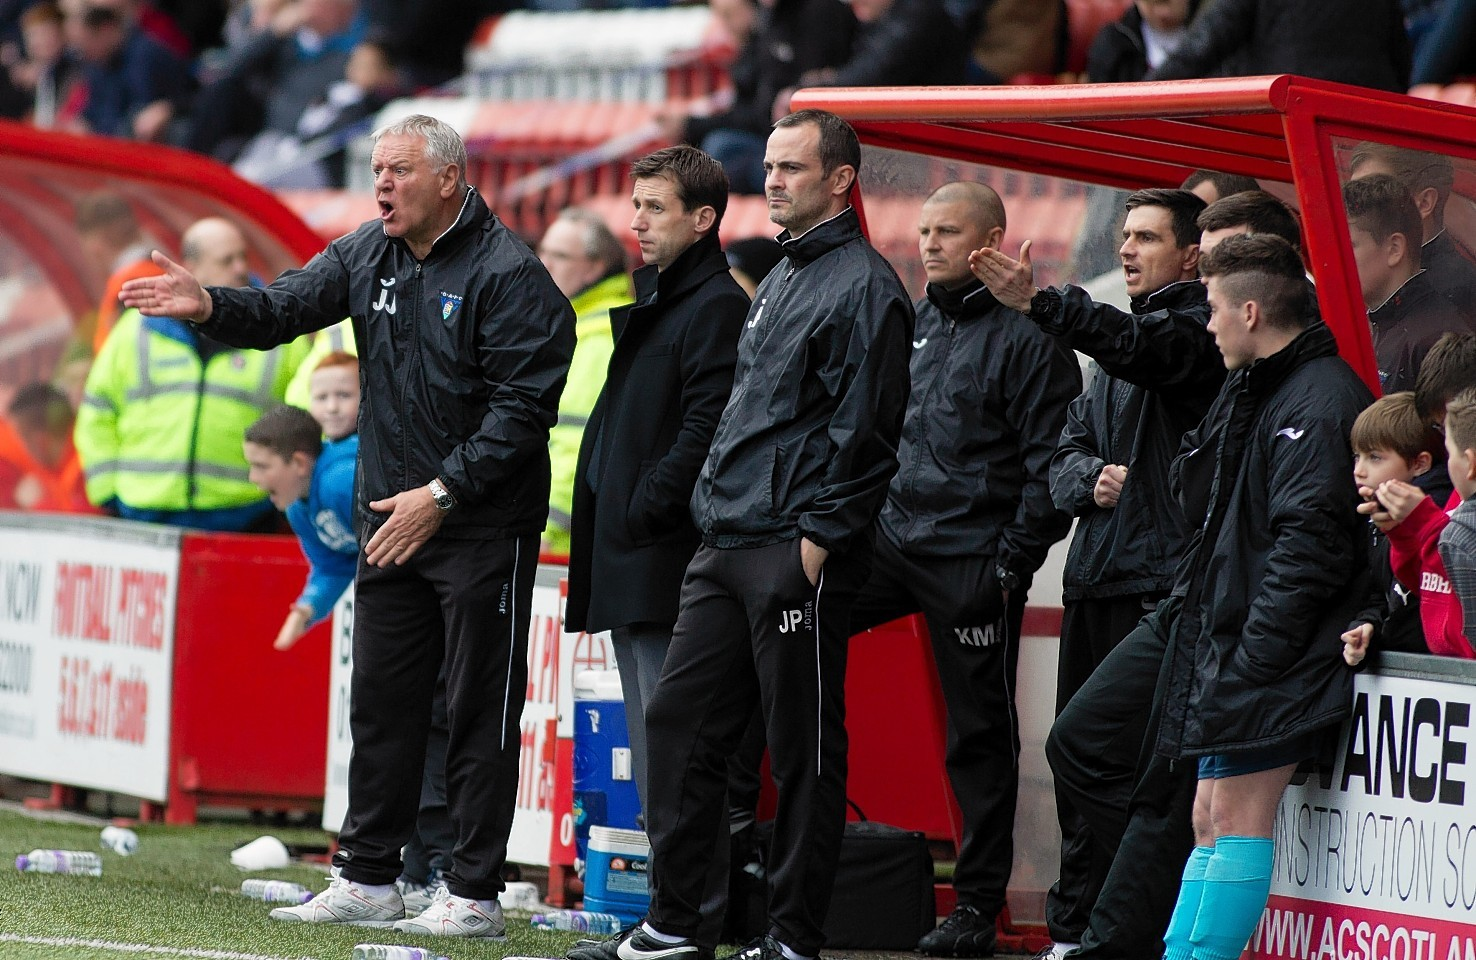 Jim Jefferies: Decided to step down as Pars manager after a poor run of results.